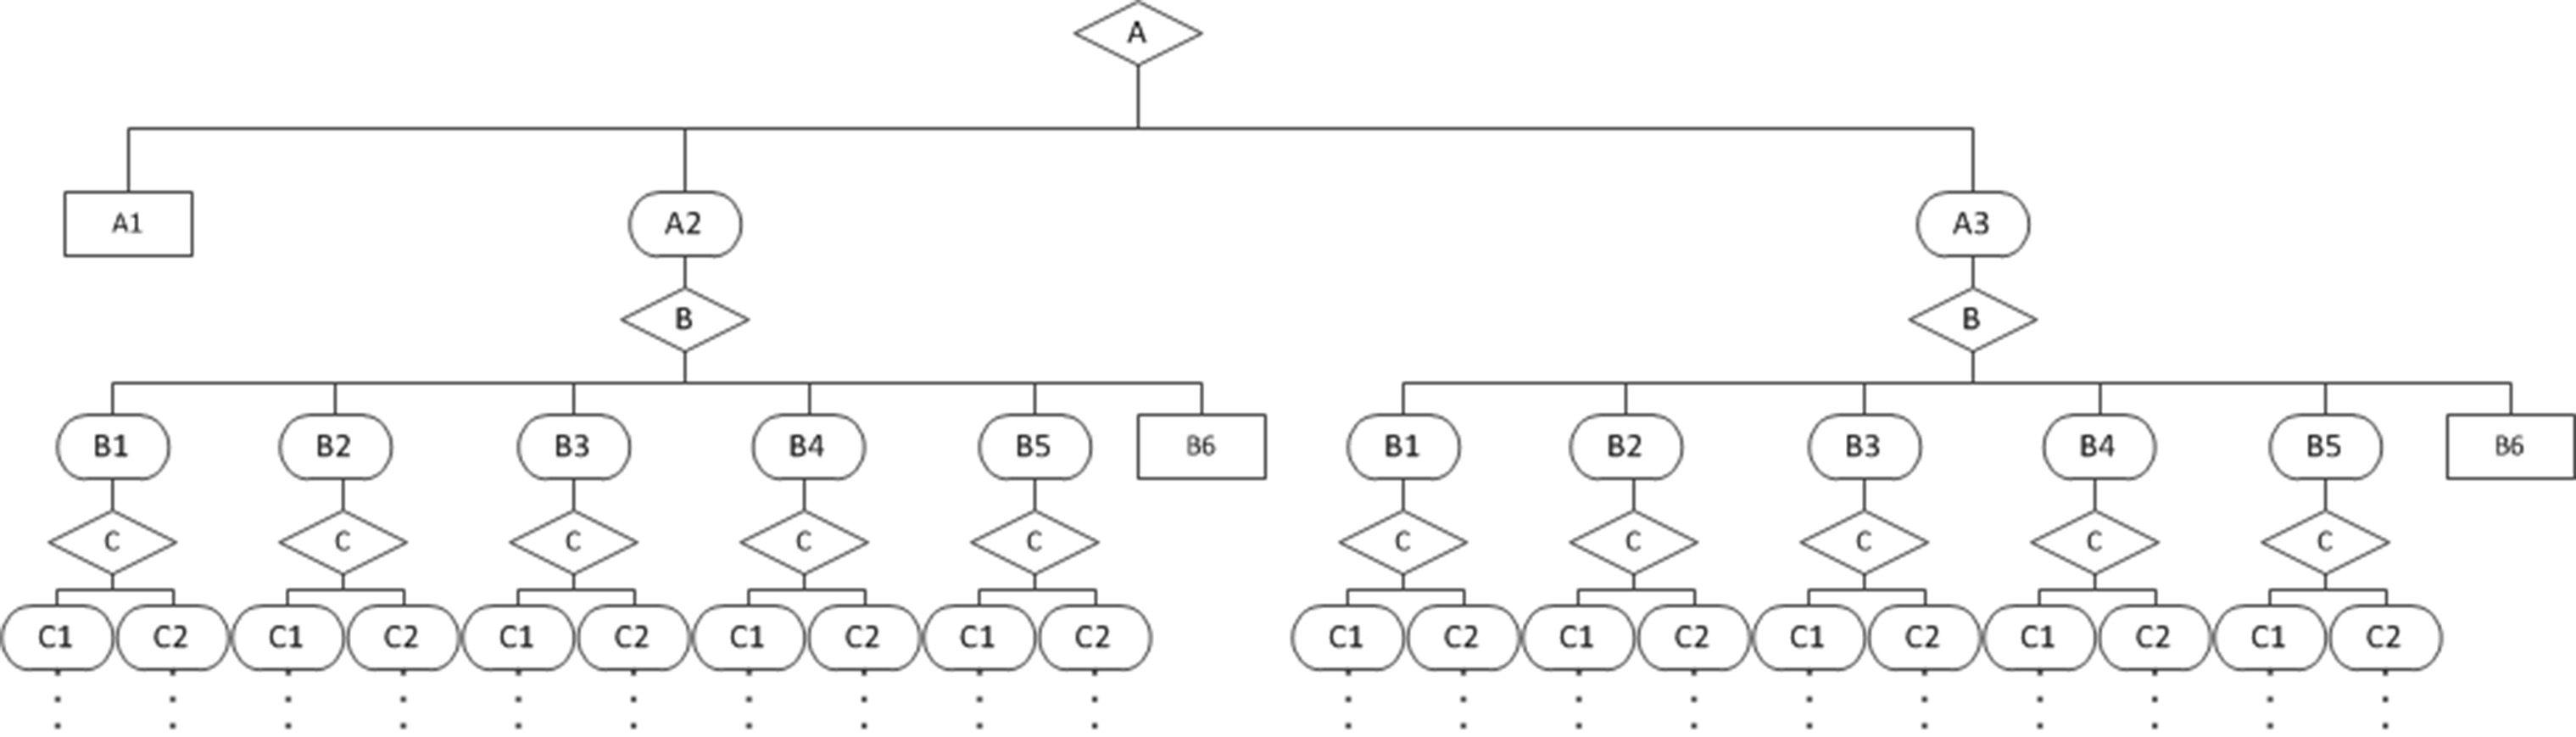 Jmi Increasing Complexity In Rule Based Clinical Decision Support Control Your Motors With L293d Guilherme Martins Figure 4 Sample Of Stack Traversal Tree Spanning Algorithm Approach